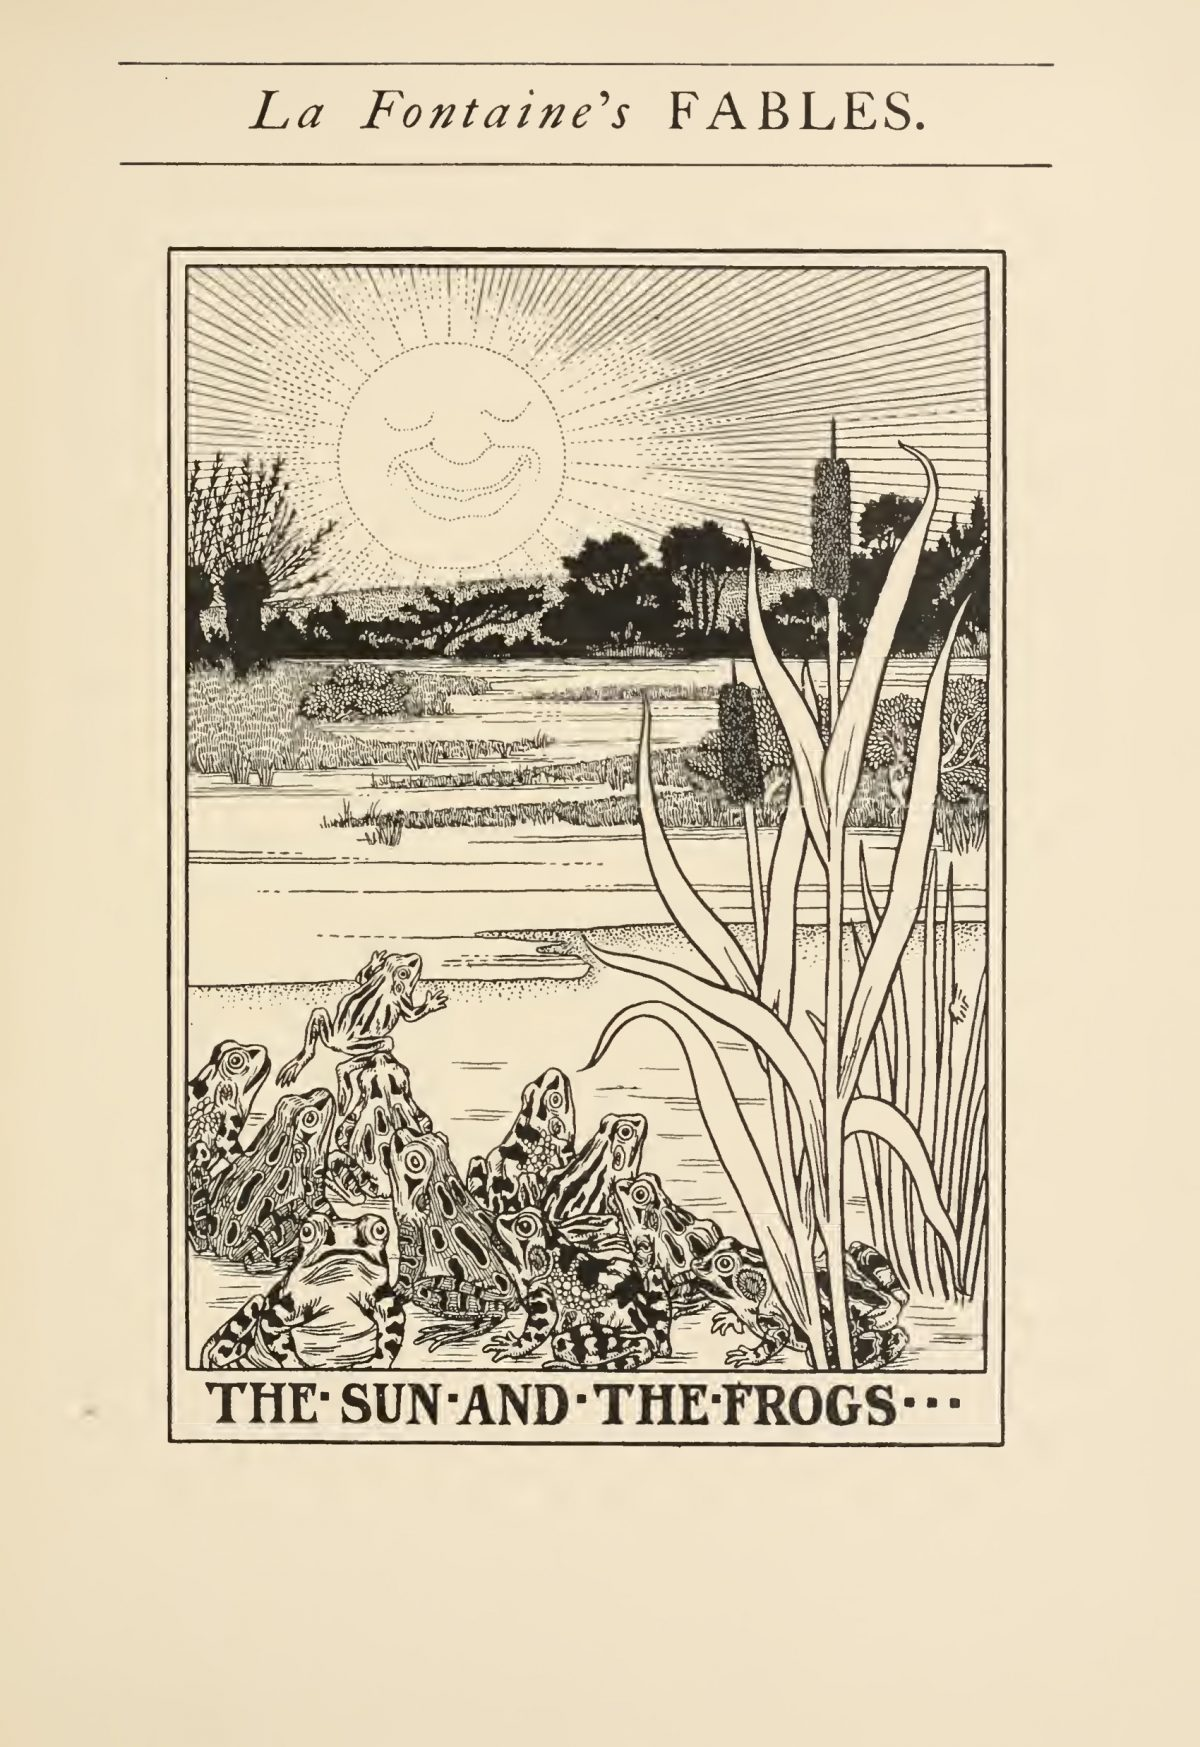 A Hundred Fables of La Fontaine by Jean La Fontaine (1621-1695) was illustrated by Percy J Billinghurst